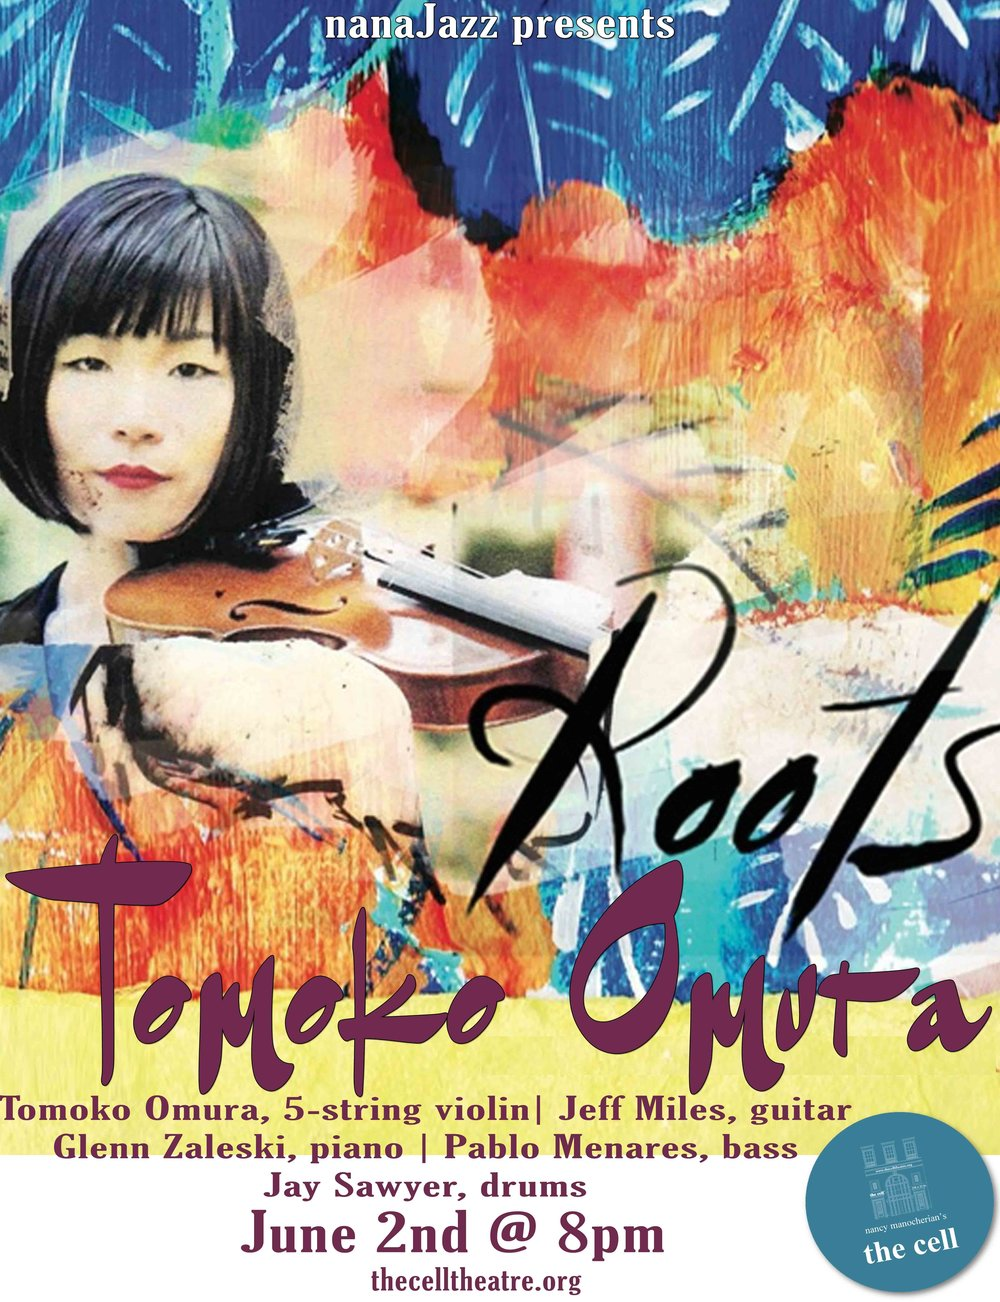 "Tomoko Omura is among today's leading voices in jazz violin. ""Roots"", her debut album for Inner Circle, is a compelling tribute to her native Japan, featuring original arrangements of ten classic Japanese folk and popular songs. In the words of fellow violinist Christian Howes, ""'Roots' is a tremendous accomplishment, and undoubtedly one of the most important and creative jazz albums produced by a violinist in recent history.""  Downbeat  magazine calls Tomoko ""a leader with a fine future"" with 4 and half star. Her latest release ""Post Bop Gypsies"" (2017) is an album that is played by Gypsy jazz instrumentation (violin, guitar and a bass) with the Post bop jazz attitude. Also from Inner Circle Music. She is chosen for one of  ""Rising star"" on critics poll, Downbeat Magazine in 2015, 2016 and 2017.  Strongly informed by the jazz violin tradition, her 2008 self-released debut album, ""Visions"", is a collection of seven dynamic original pieces, each of which is dedicated to one of the greats of the instrument, from Stuff Smith to Zbigniew Seifert. Violinst Matt Glaser praises ""Visions"" as such: ""Her playing here is uniformly amazing, with great ideas, great tone, perfect intonation and great feel..."". ""Mark's Passion"", dedicated to Mark Feldman, was awarded an Honorable Mention in the 2008 International Songwriting Competition. The release of ""Visions"" also prompted  Strings  Magazine to name Omura a ""Rising Star"" in 2009. In 2014, she was chosen as a semi finalist of the 1st International Zbigniew Seifert Jazz Violin Competition in Krakow, Poland.  Originally from Shizuoka, Japan, she began studying the violin at a young age with her mother, and began playing jazz music while studying at Yokohama National University. In 2004, Tomoko relocated to the United States when she was awarded a scholarship to study at the Berklee College of Music in Boston, MA. While at Berklee, Tomoko worked with such legendary musicians as George Garzone, Hal Crook, Ed Tomassi, Jamey Haddad, Matt Glaser and Rob Thomas. In 2005, during her sophomore year, she was awarded Berklee's prestigious Roy Haynes award; an award given to one student for their exceptional improvisational skills. Tomoko was the first violinist in Berklee's history to receive this award.  She graduated summa cum laude in 2007.  Since moving to NY in 2010, Tomoko has performed with a wide range of musicians including  Fabian Almazan, Paquito D'Rivera, The Mahavishnu Project, Aubrey Johnson, Tammy Scheffer, Camila Meza, Joanna Wallfisch, Carolina Calvache, Mario Castro, Annie Chen, Vadim Neselovskyi, Daniel Foose and Simon Yu's Exotic Experiment. She is featured on Almazan's Blue Note/ArtistShare debut recording, ""The Rhizome Project"" and the recent Biophilia records release ""Alcanza"". She has previously been a full time member of world music band, The Guy Mendilow Ensemble, Celtic music band, RUNA and the vintage jazz band, Carte Blanche. She is also a member and a founder of Solar string quartet and writes own music for the group. www.tomokoomura.com"